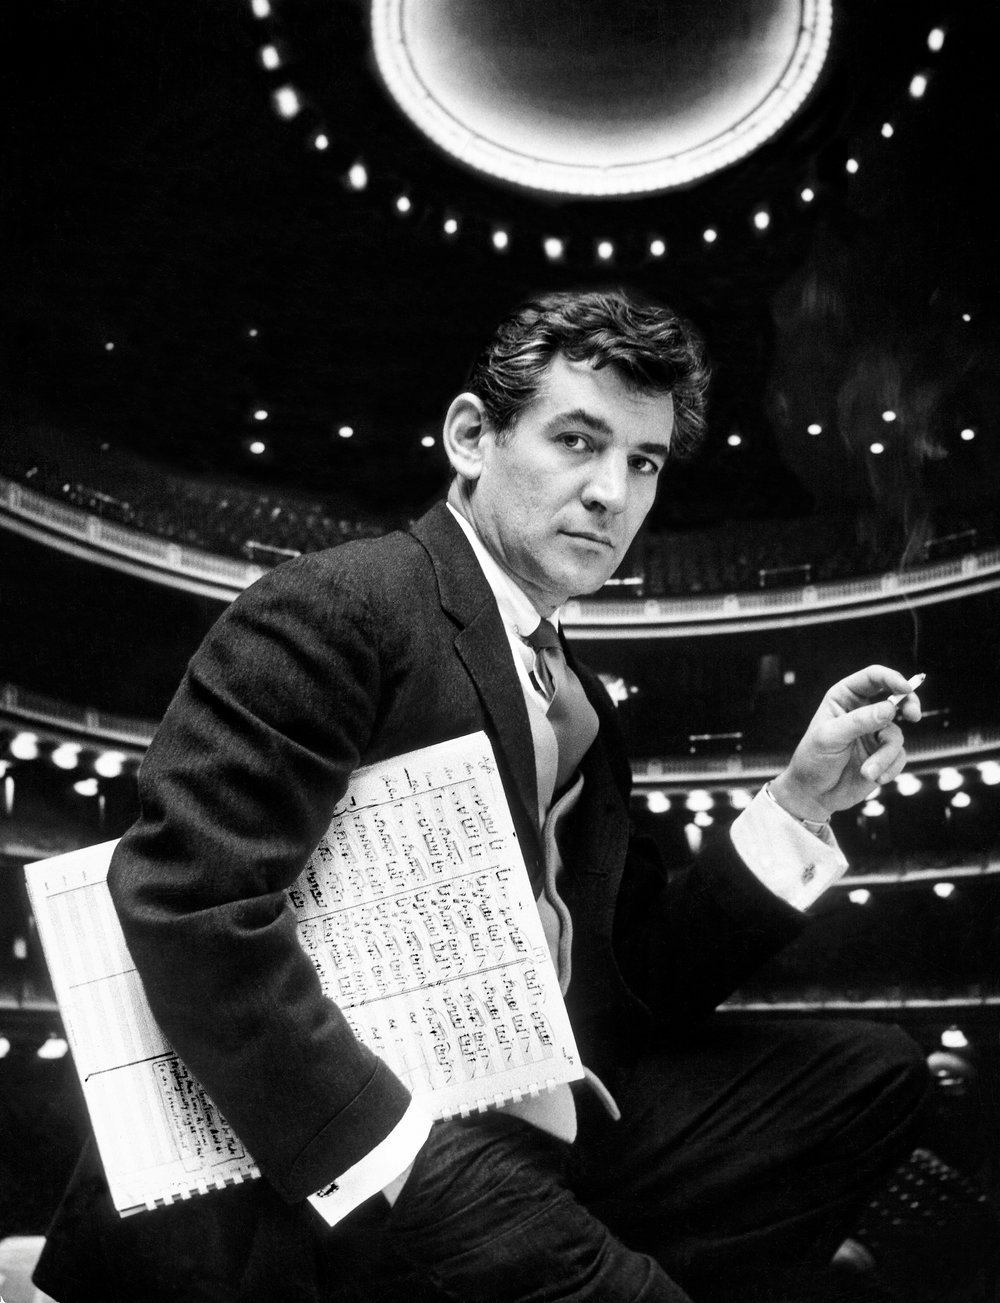 November 1955. Carnegie Hall. New York City. Portrait of Leonard Bernstein on stage Photo © Gordon Parks/The LIFE Picture Collection/Getty Images